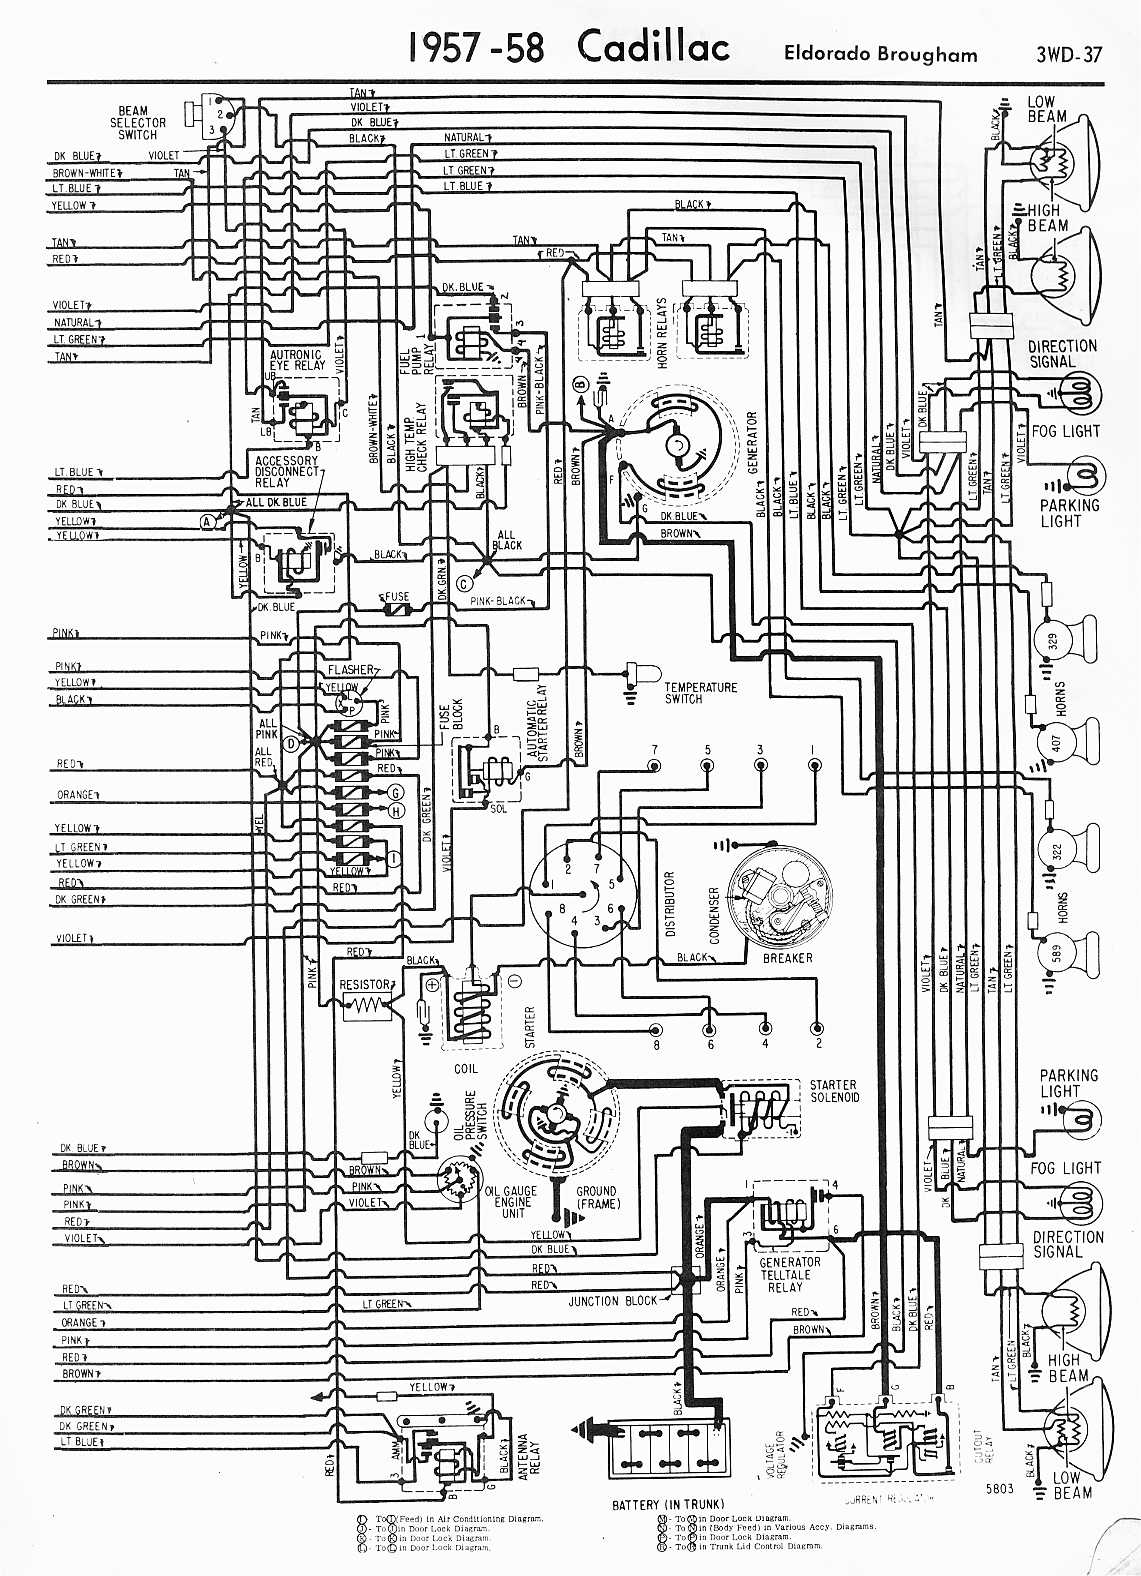 1956 Cadillac Wiring Diagram Todays 56 Ford Diagrams 1957 1965 1959 Chevy Truck